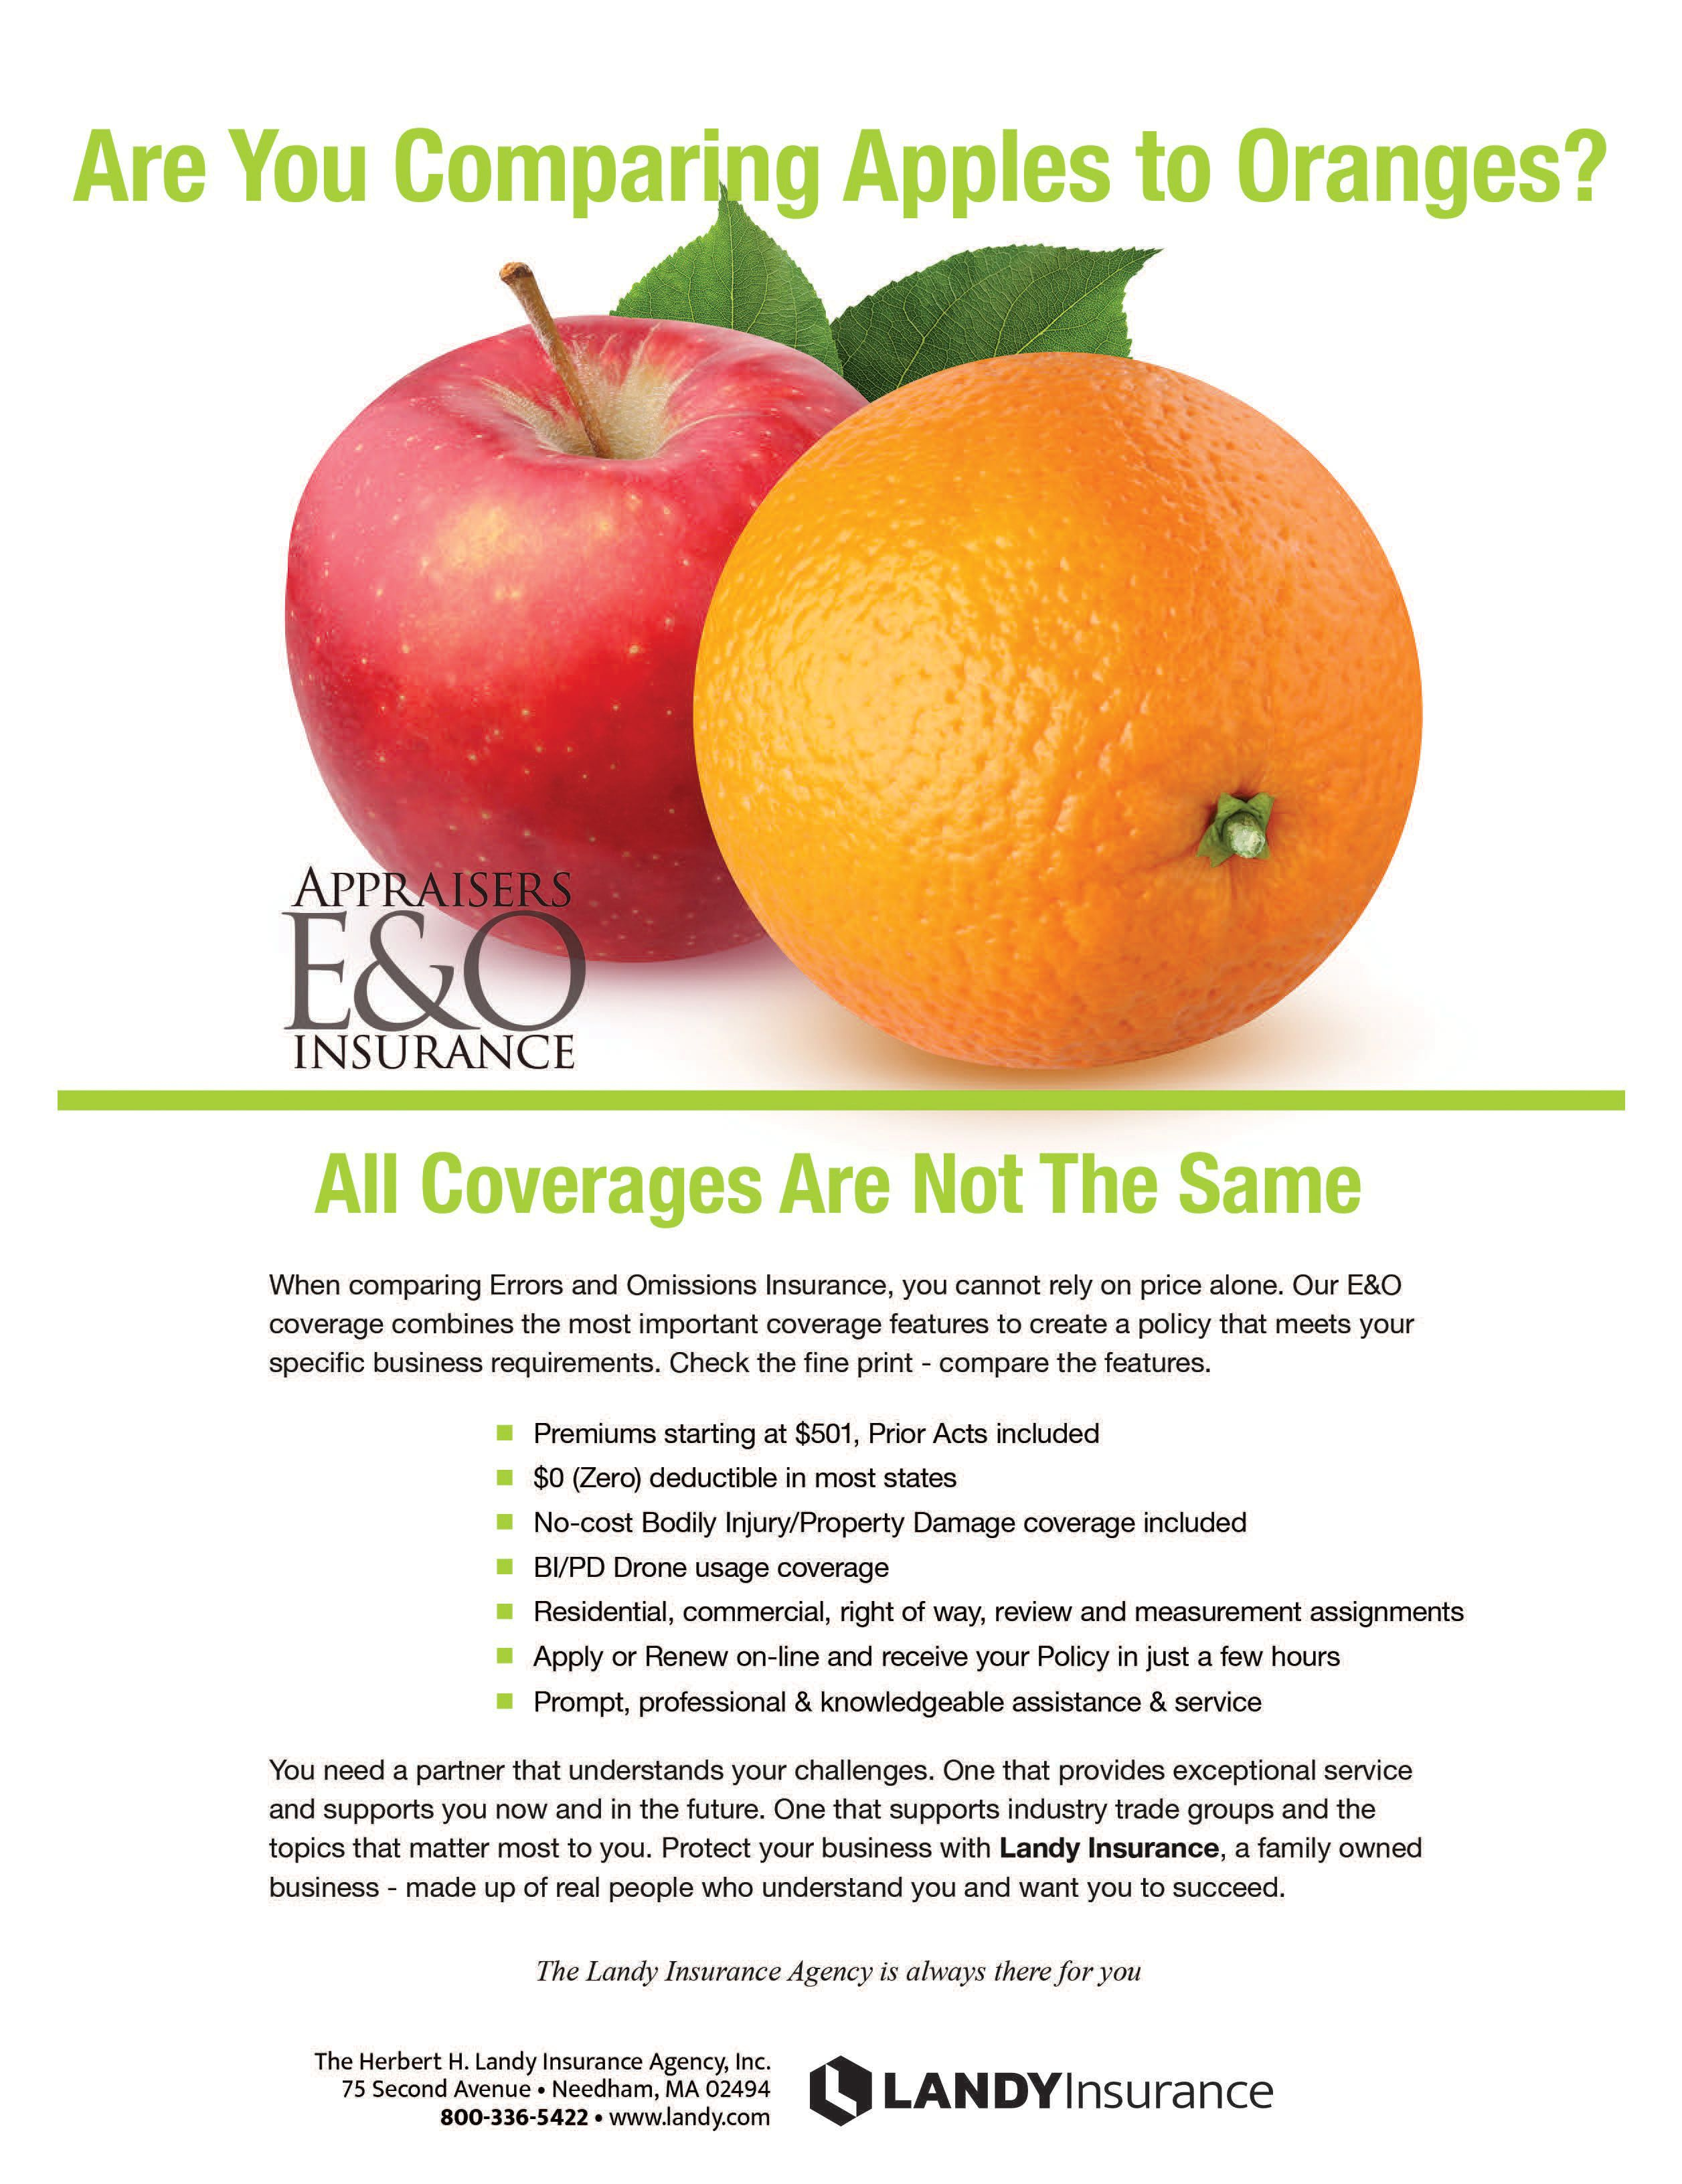 Are You Comparing Apples to Oranges All Coverages Are